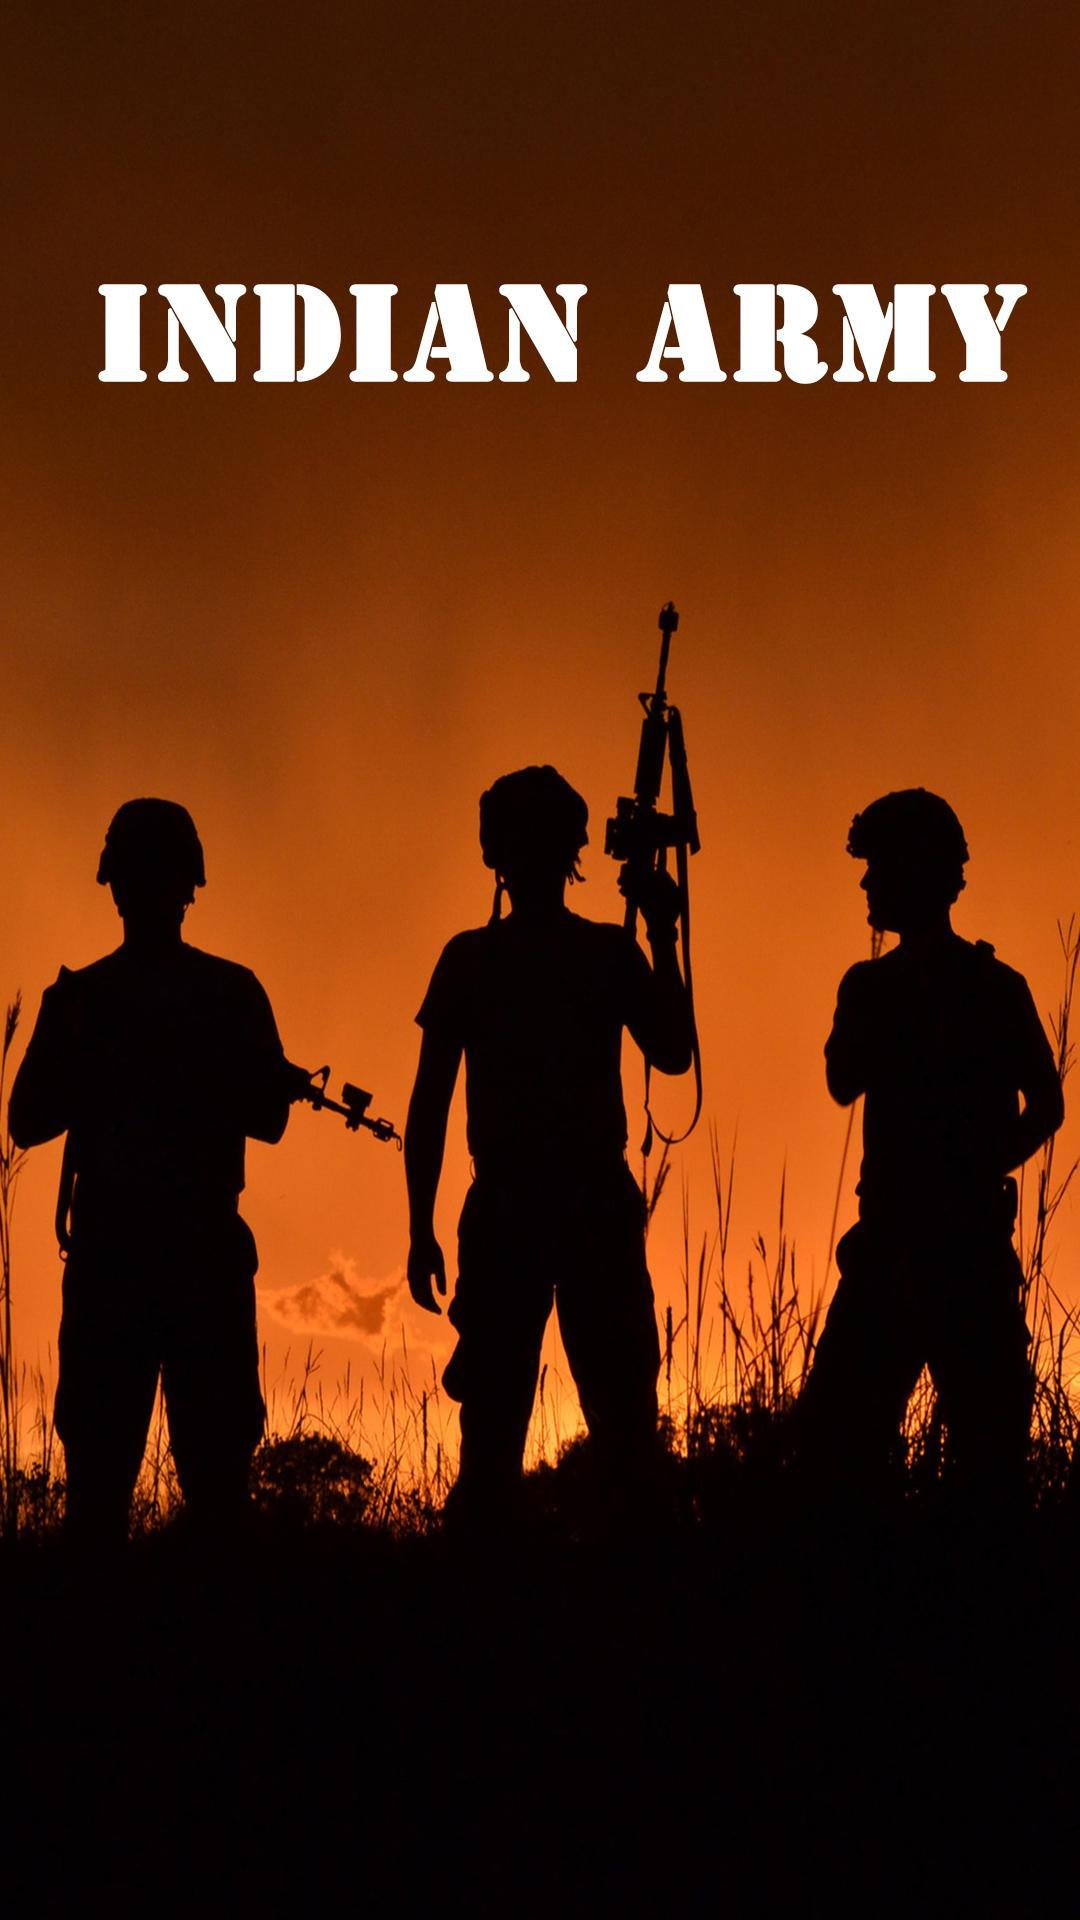 42 Indian Army Whatsapp Dp Free Download News Share